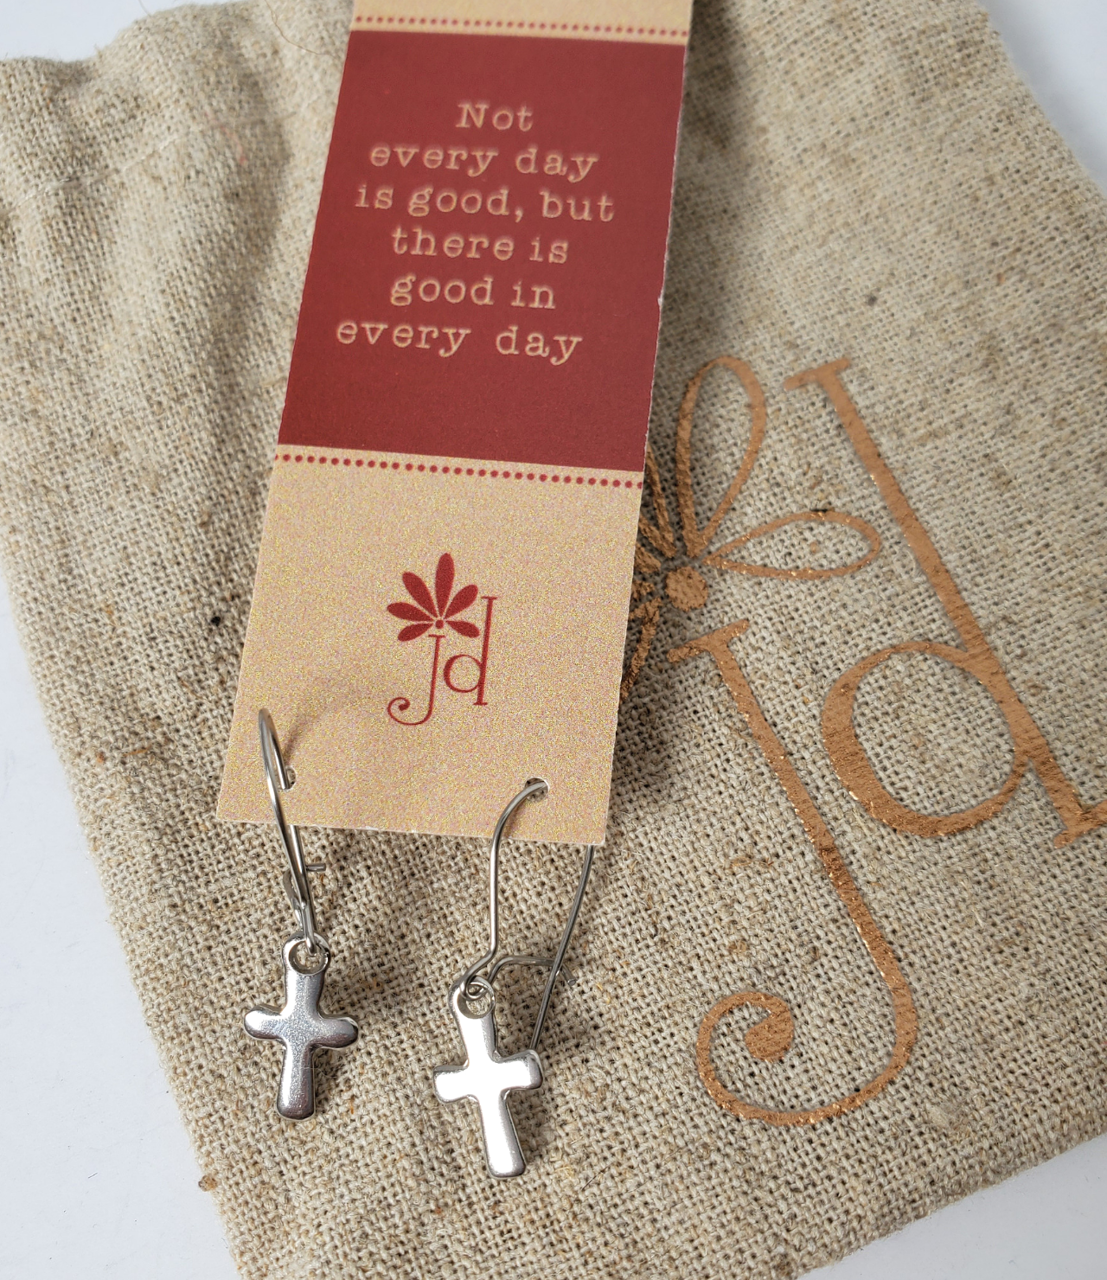 tiny stainless steel cross earrings in onspirational quote card